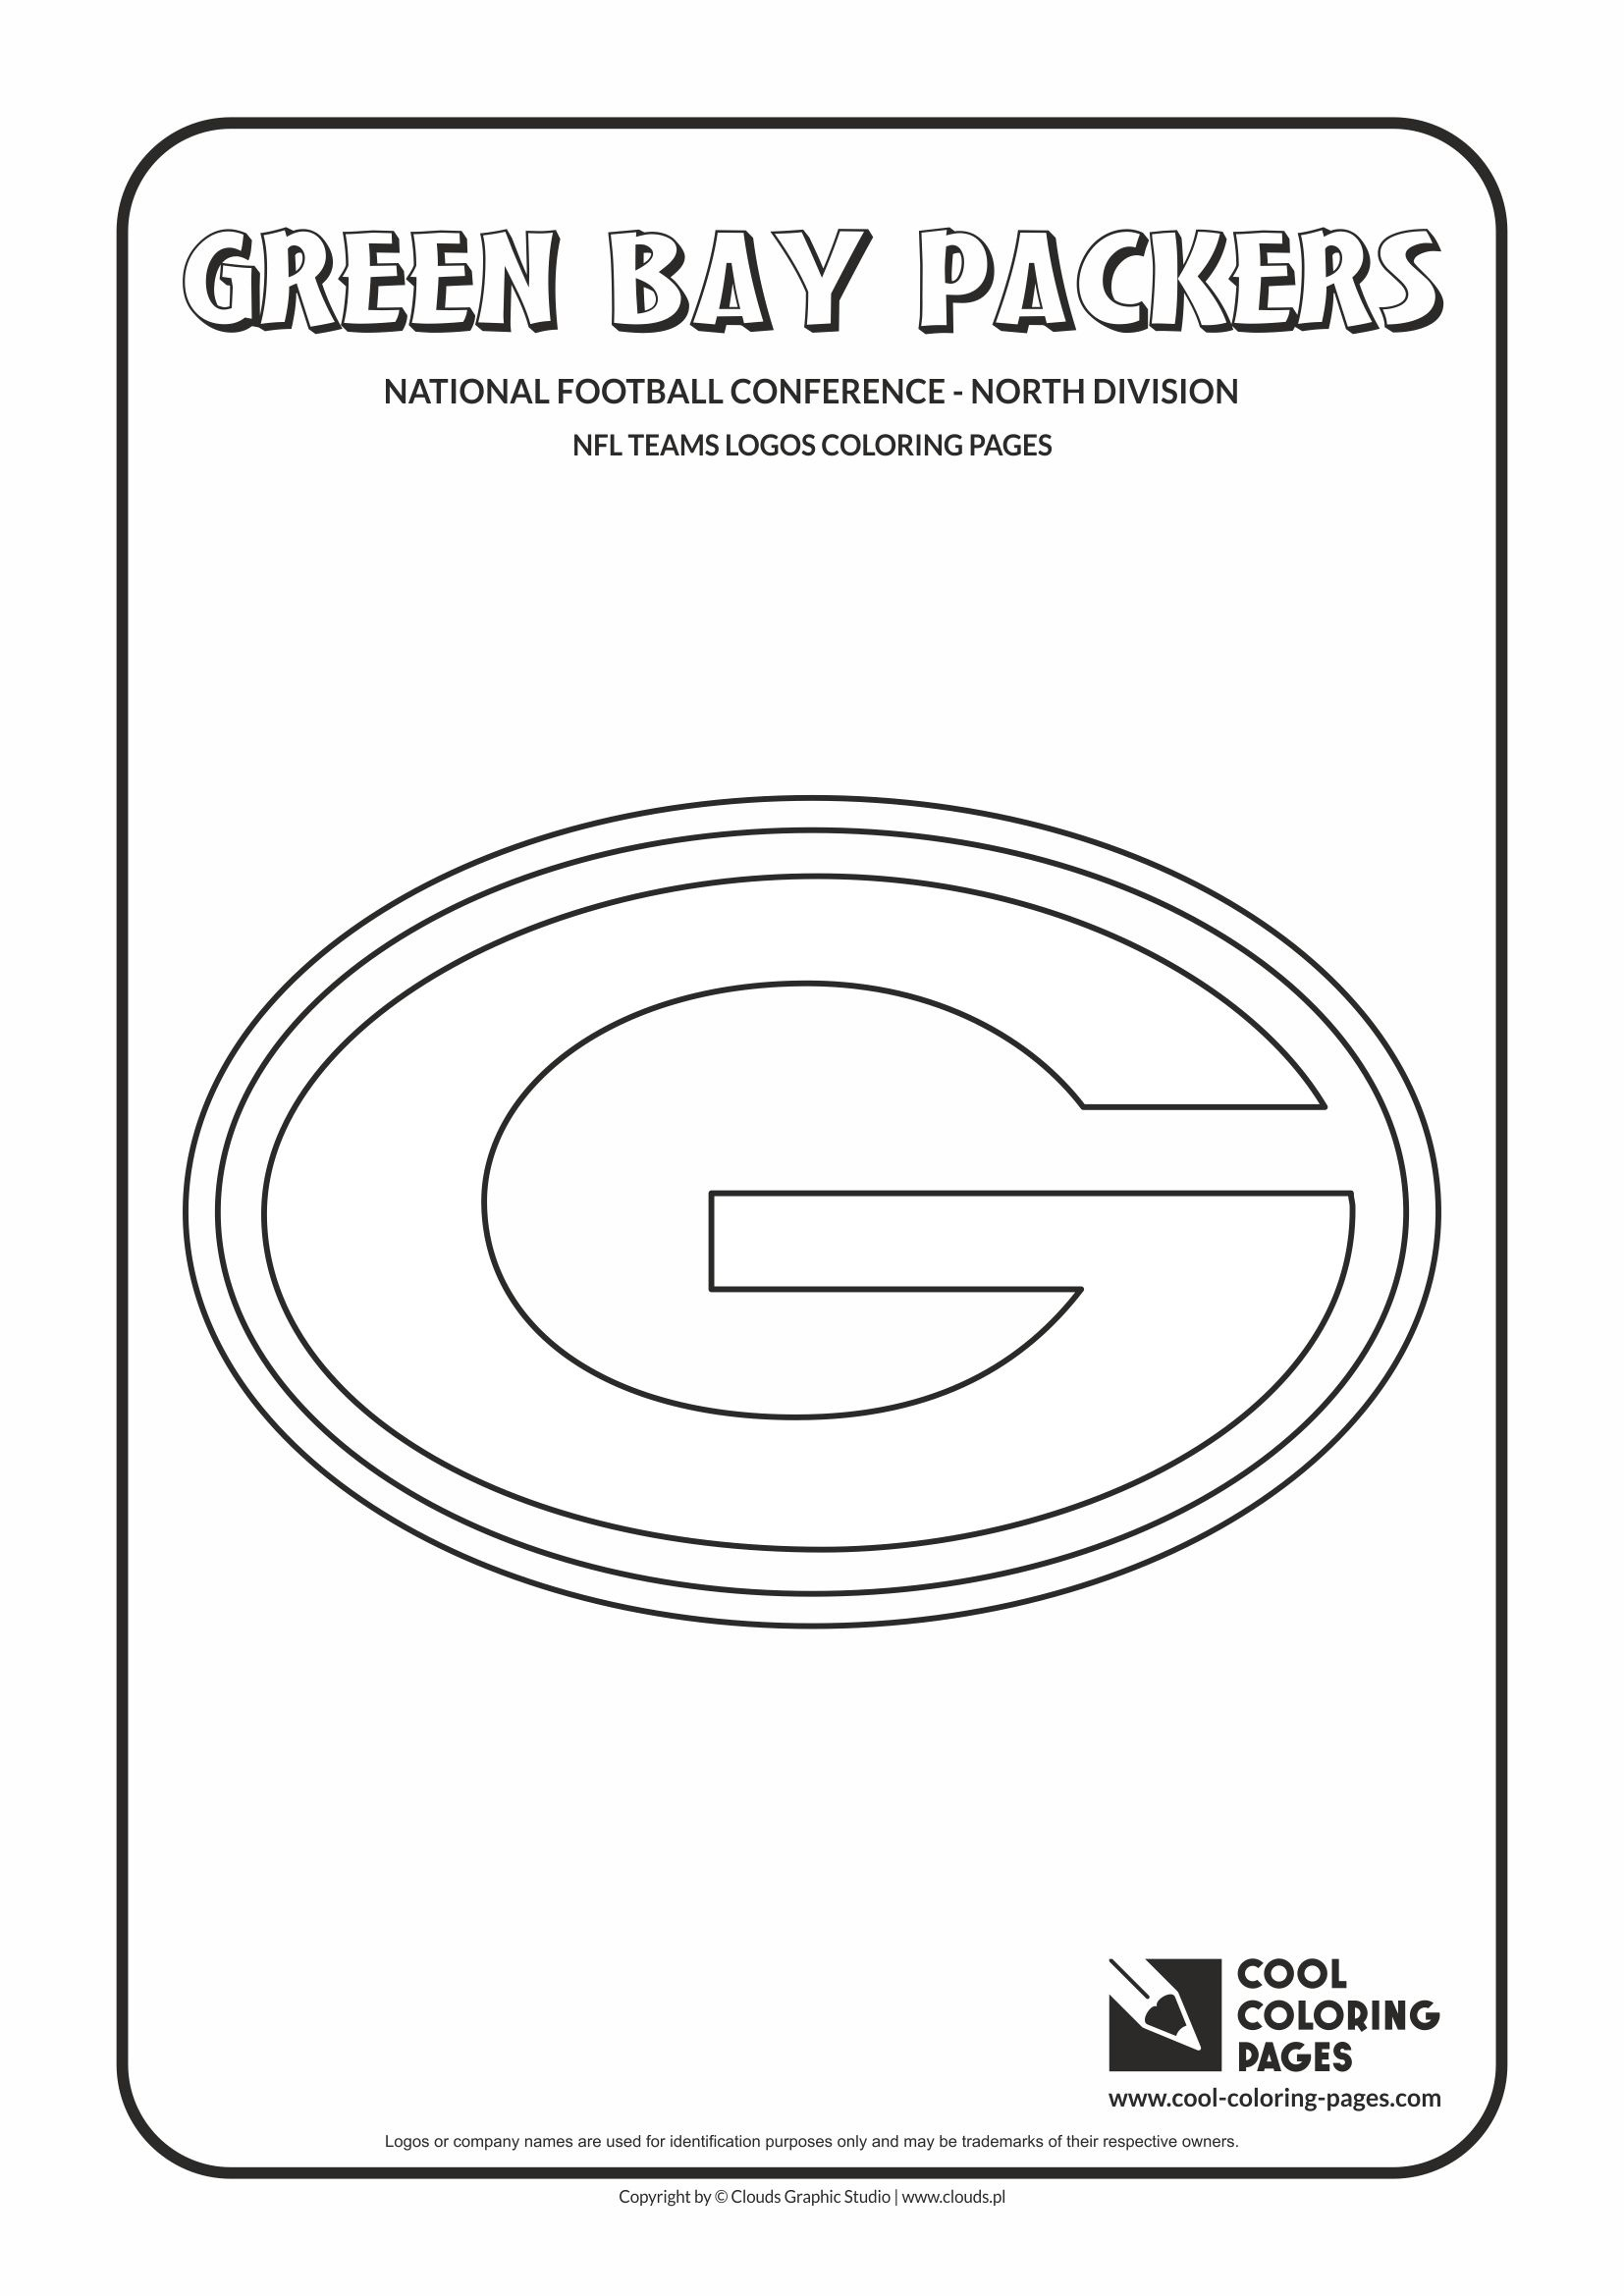 Cool Coloring Pages Green Bay Packers - Nfl American Football Teams - Free Printable Green Bay Packers Logo